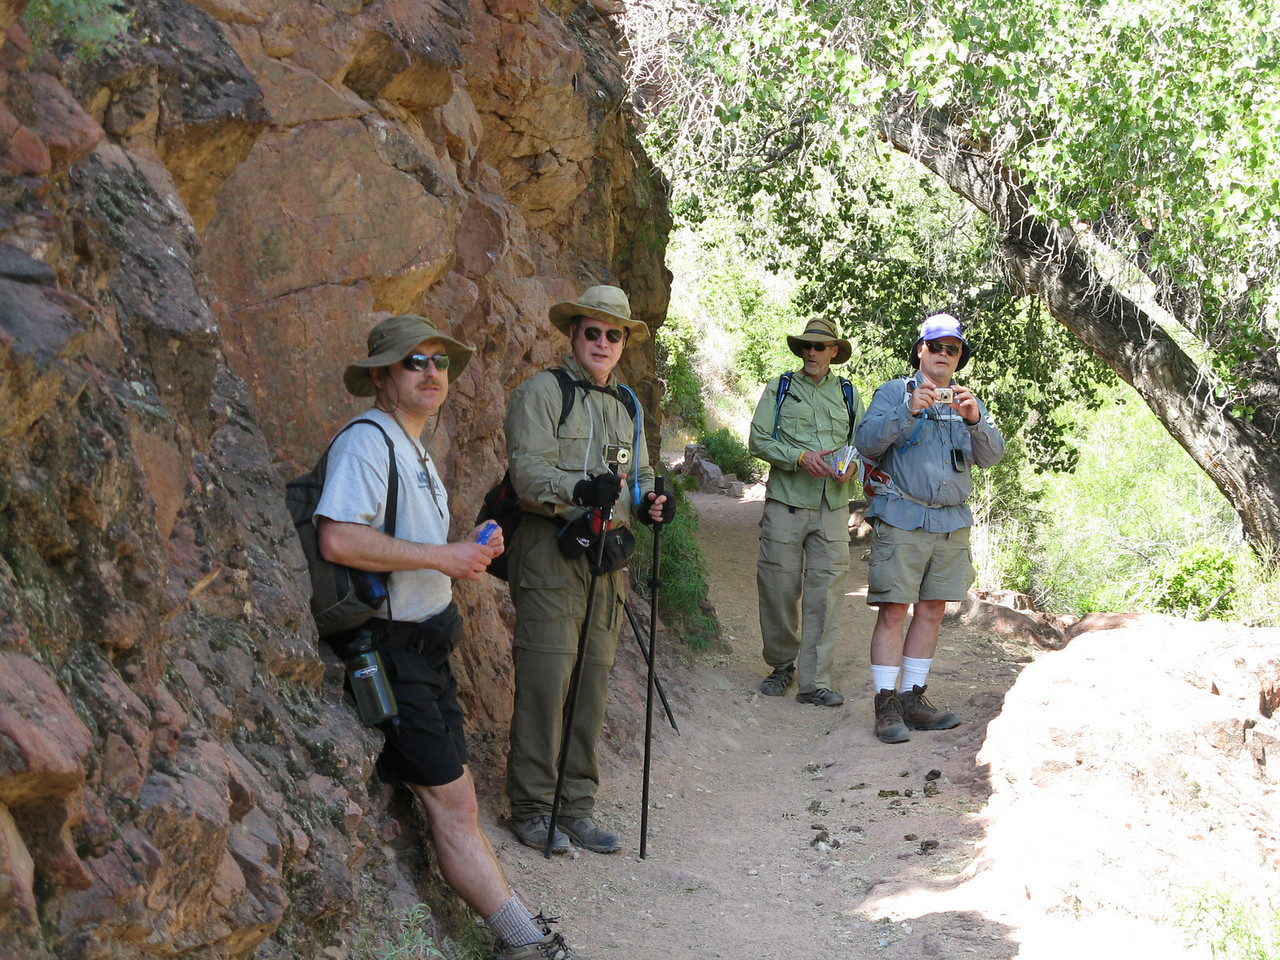 By mid morning, a rock face along the trail provides welcome shade. (L to R) Dairusz, Richard, Glenn, Wendell.